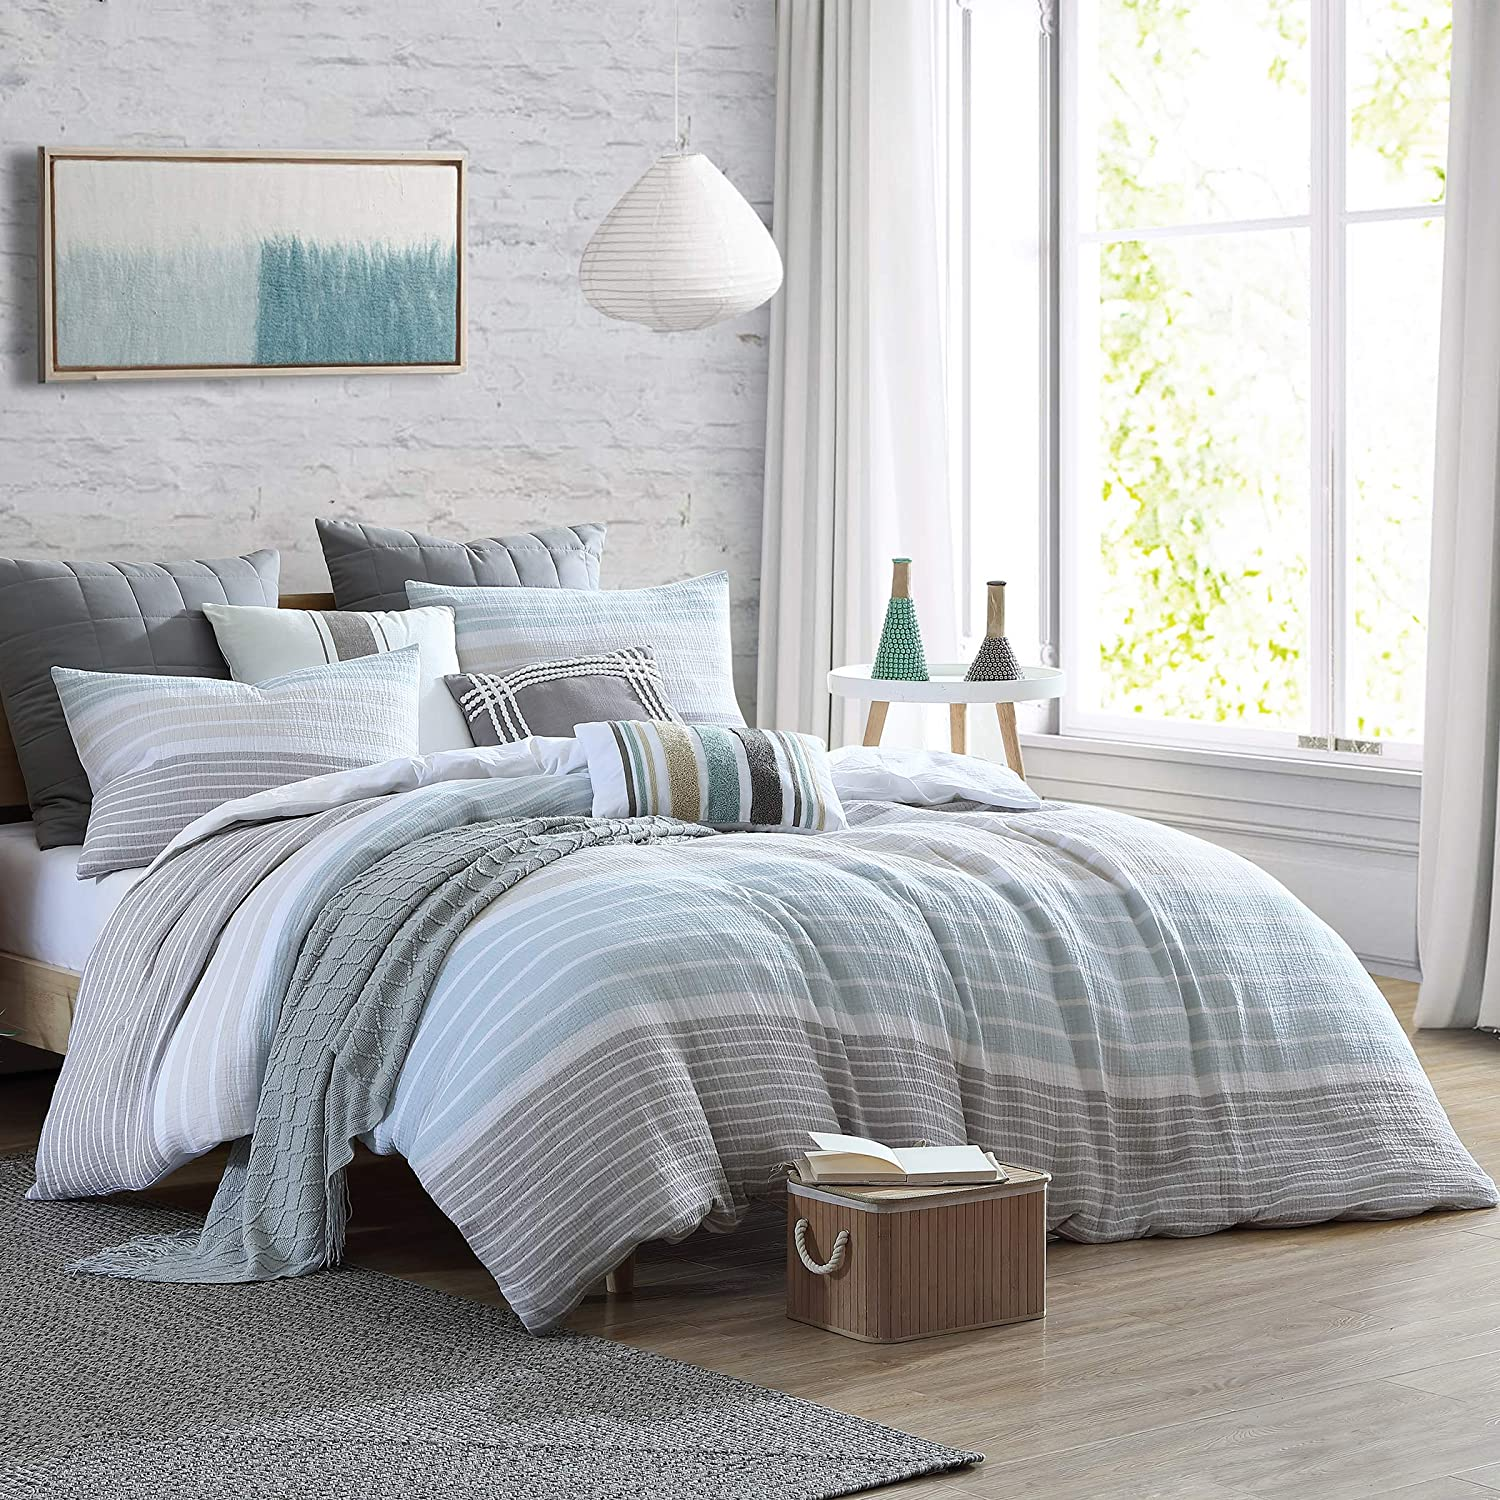 Swift Home Cordelia Prewashed Yarn-Dyed 100% Cotton Gauze Stripe Duvet Cover Set, Oeko-Tex Certified, Ultra Soft and Breathable, Button Closure, All Season - Oatmeal, Twin/Twin XL (68